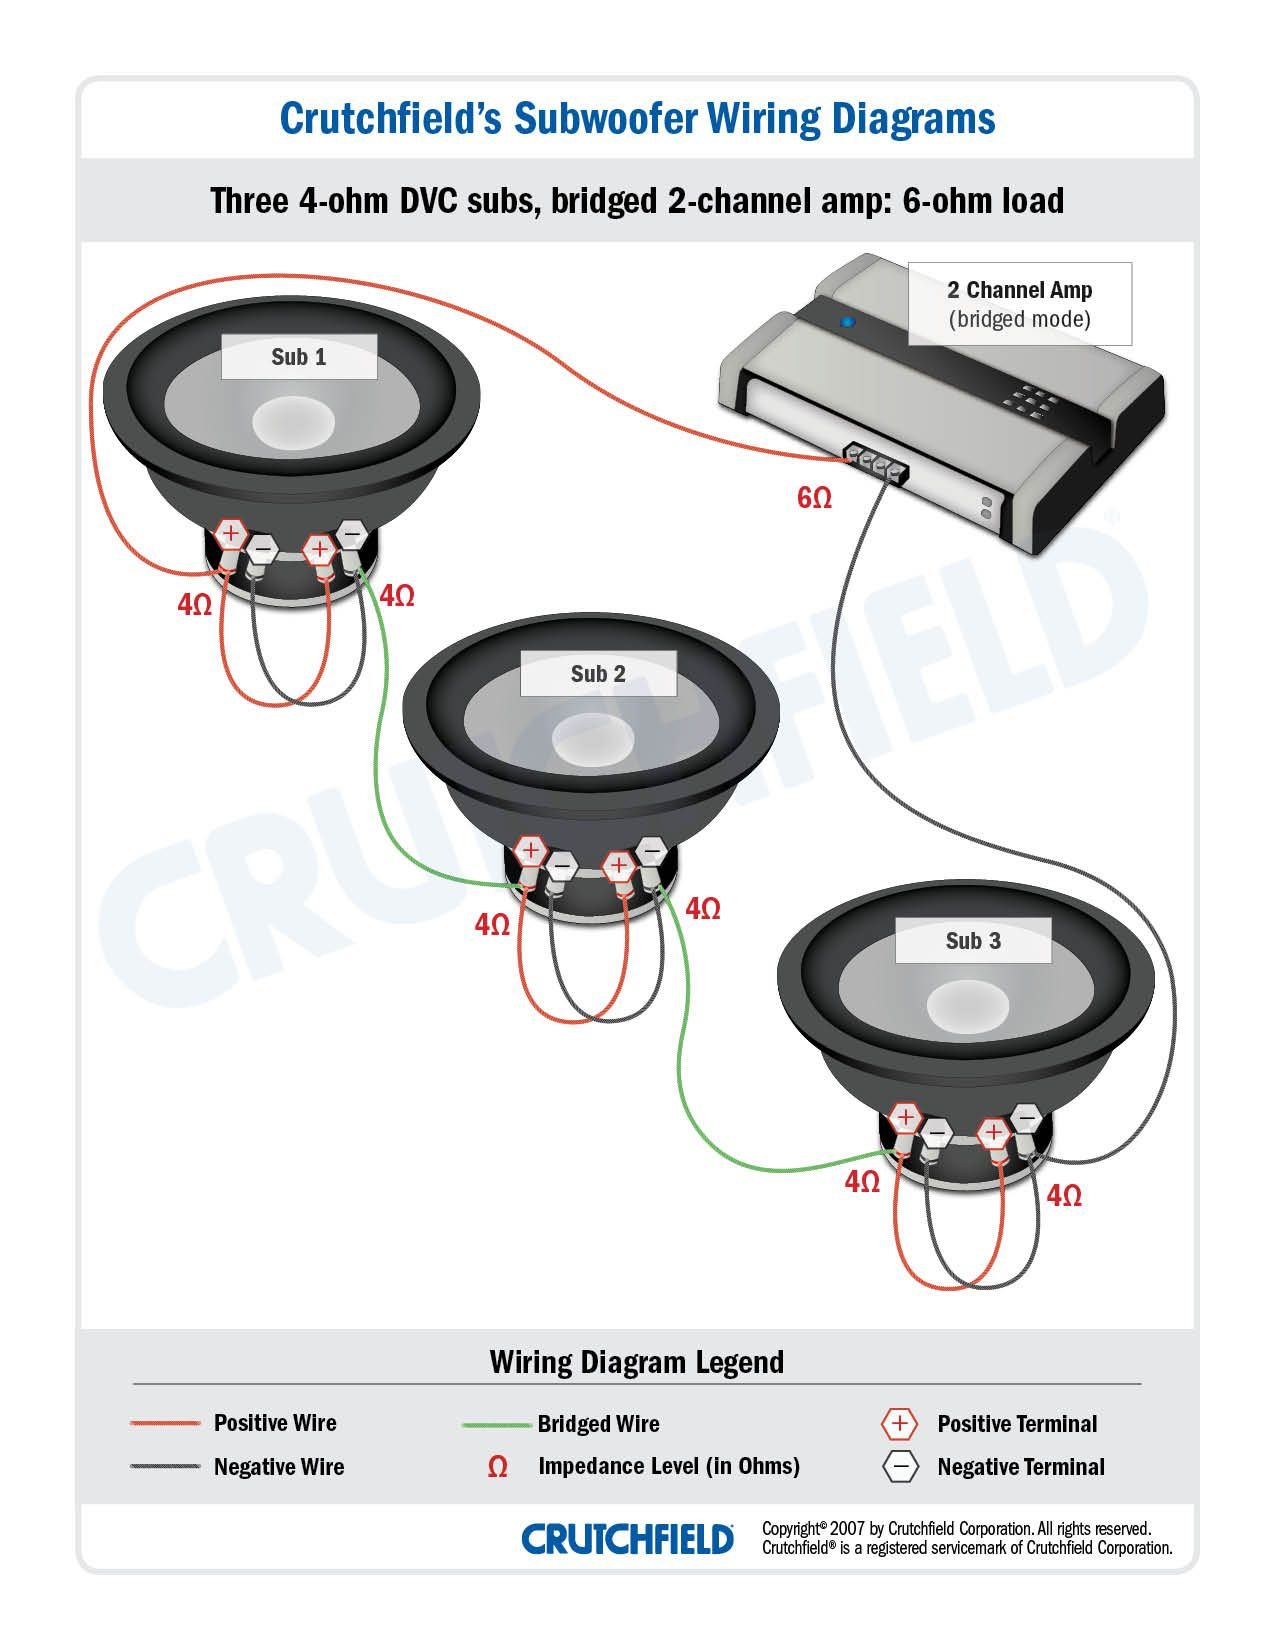 top 10 subwoofer wiring diagram free download 3 dvc 4 ohm 2 ch top rh pinterest com 2 Ohm DVC Wiring-Diagram Crutchfield Sub Wiring Diagrams 3 DVC 4 Ohm